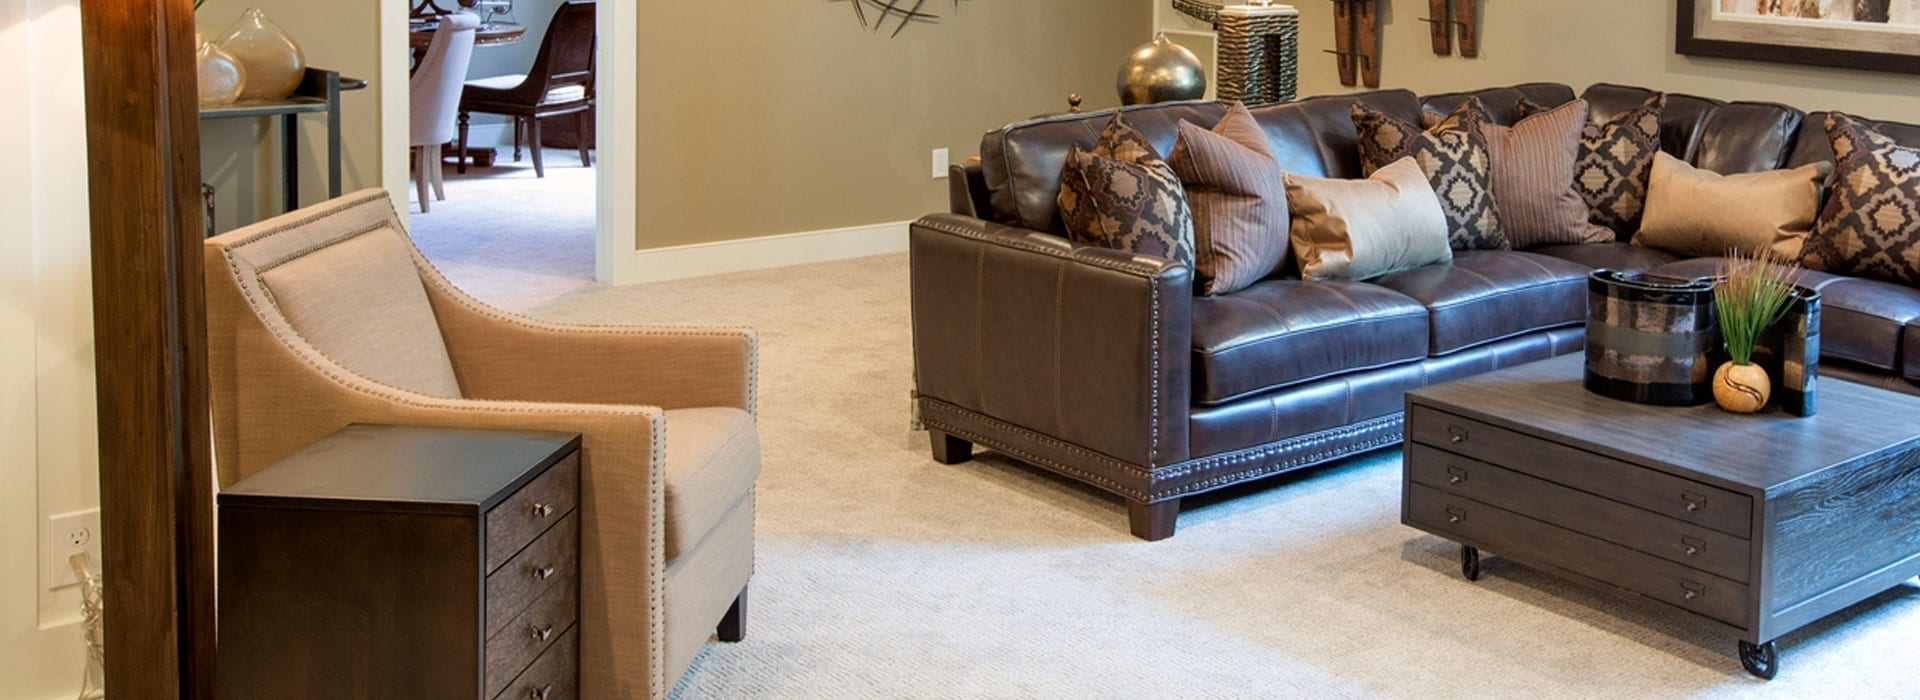 Should You Carpet Your Basement Floor? 7 Questions to Ask